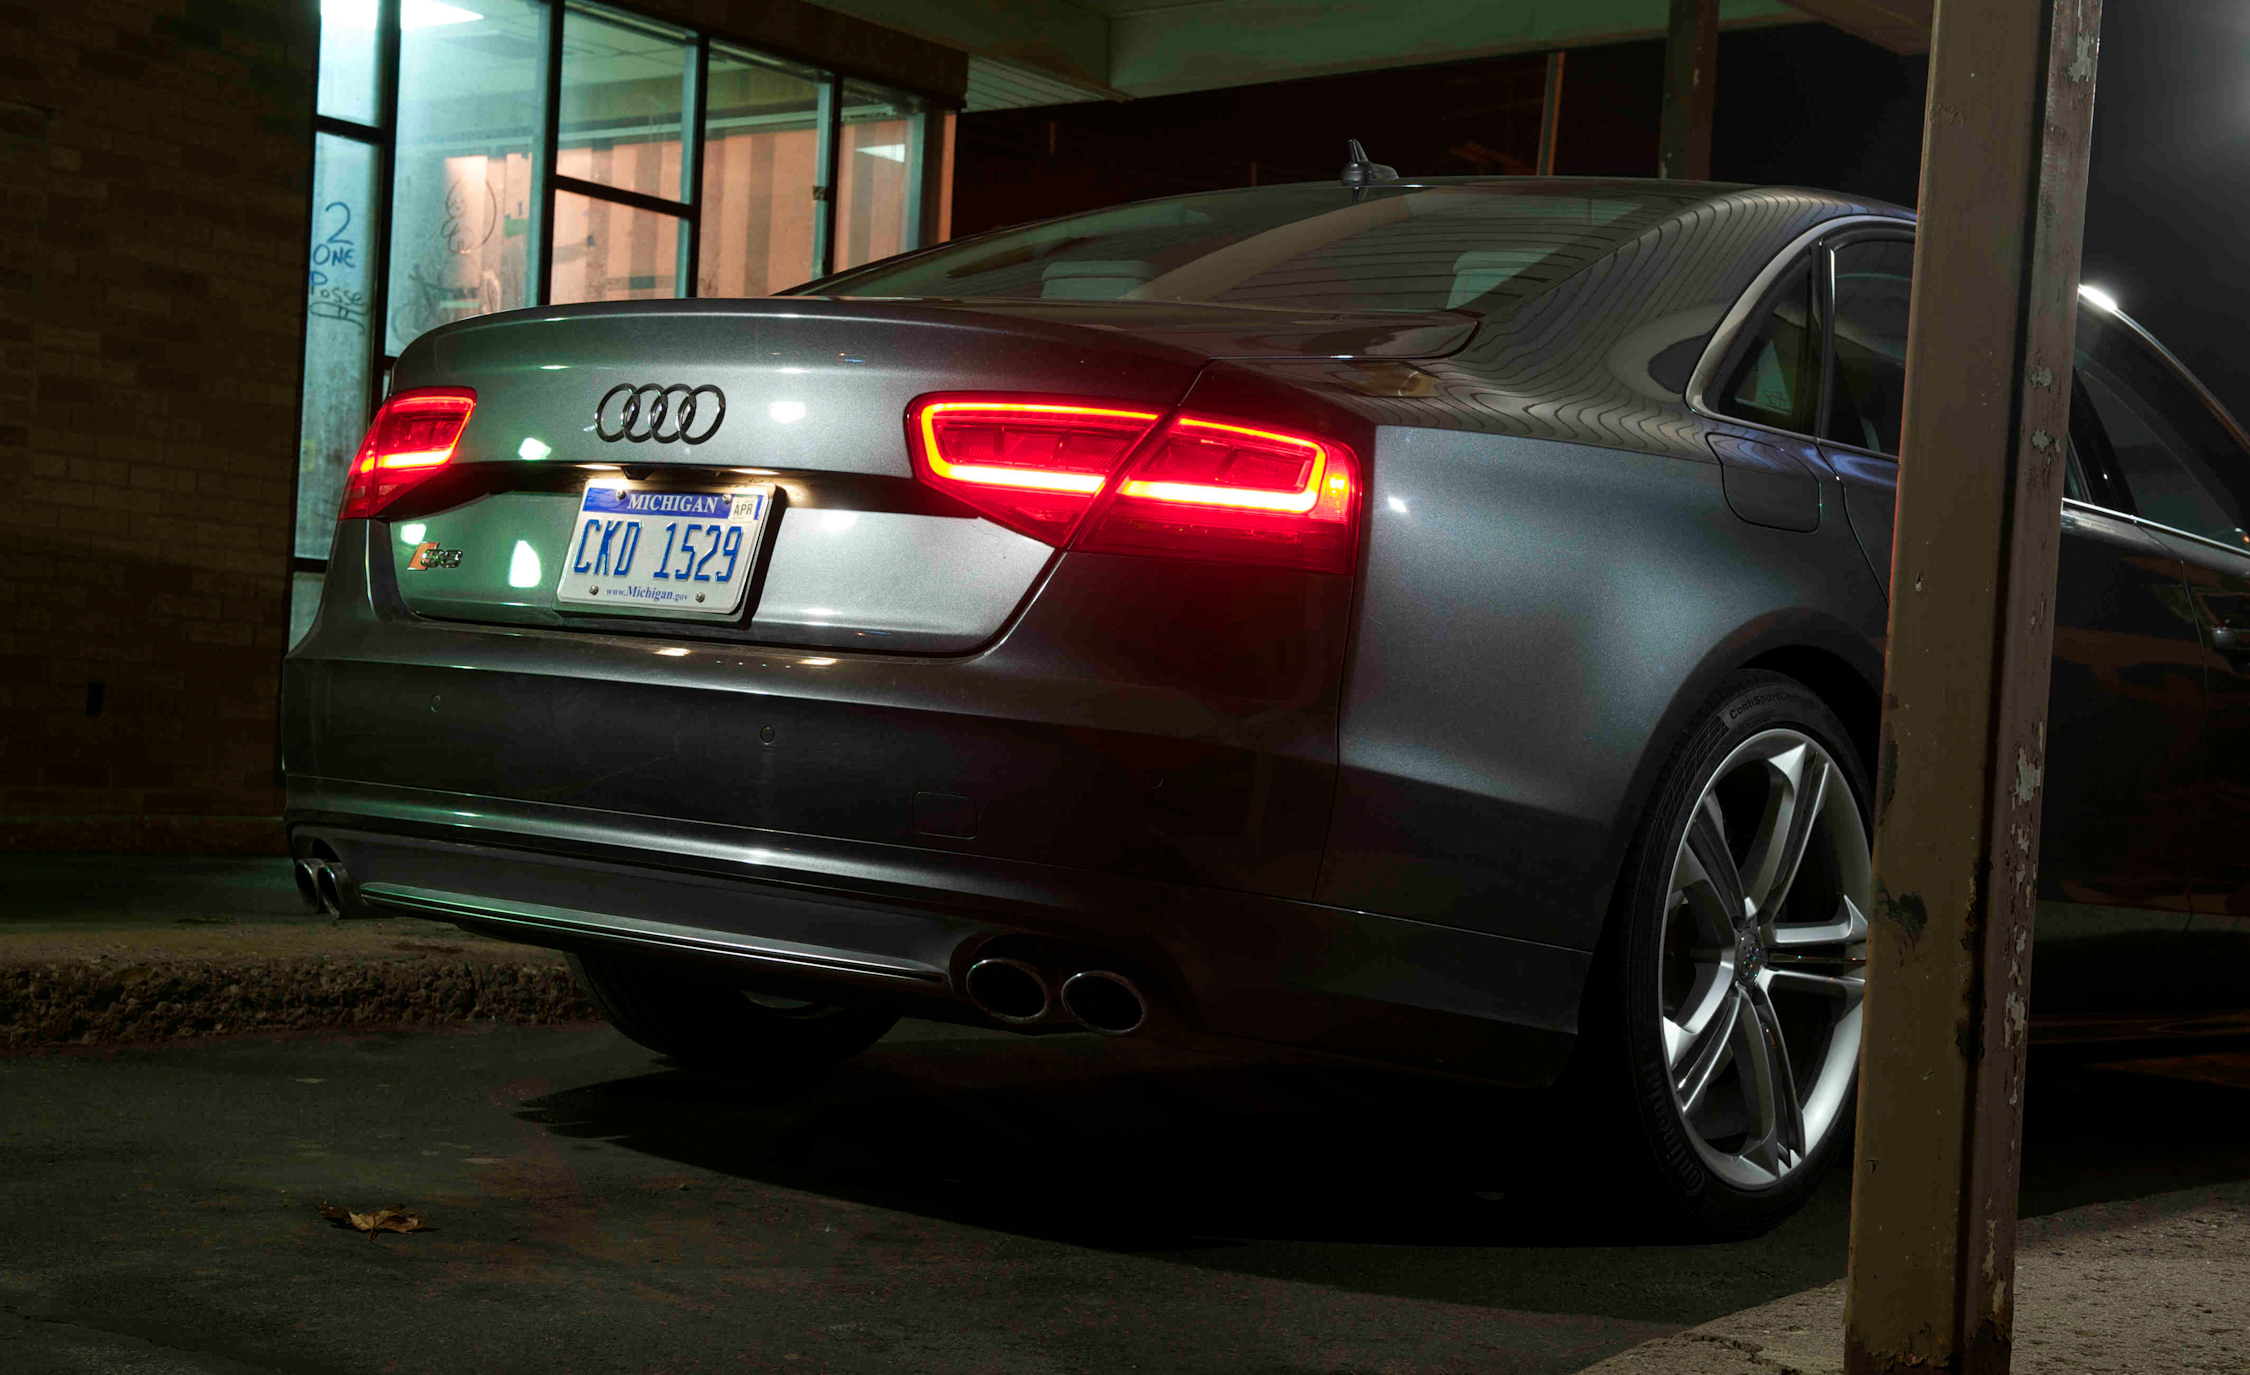 2013 Audi S8 Exterior Rear (Photo 25 of 25)